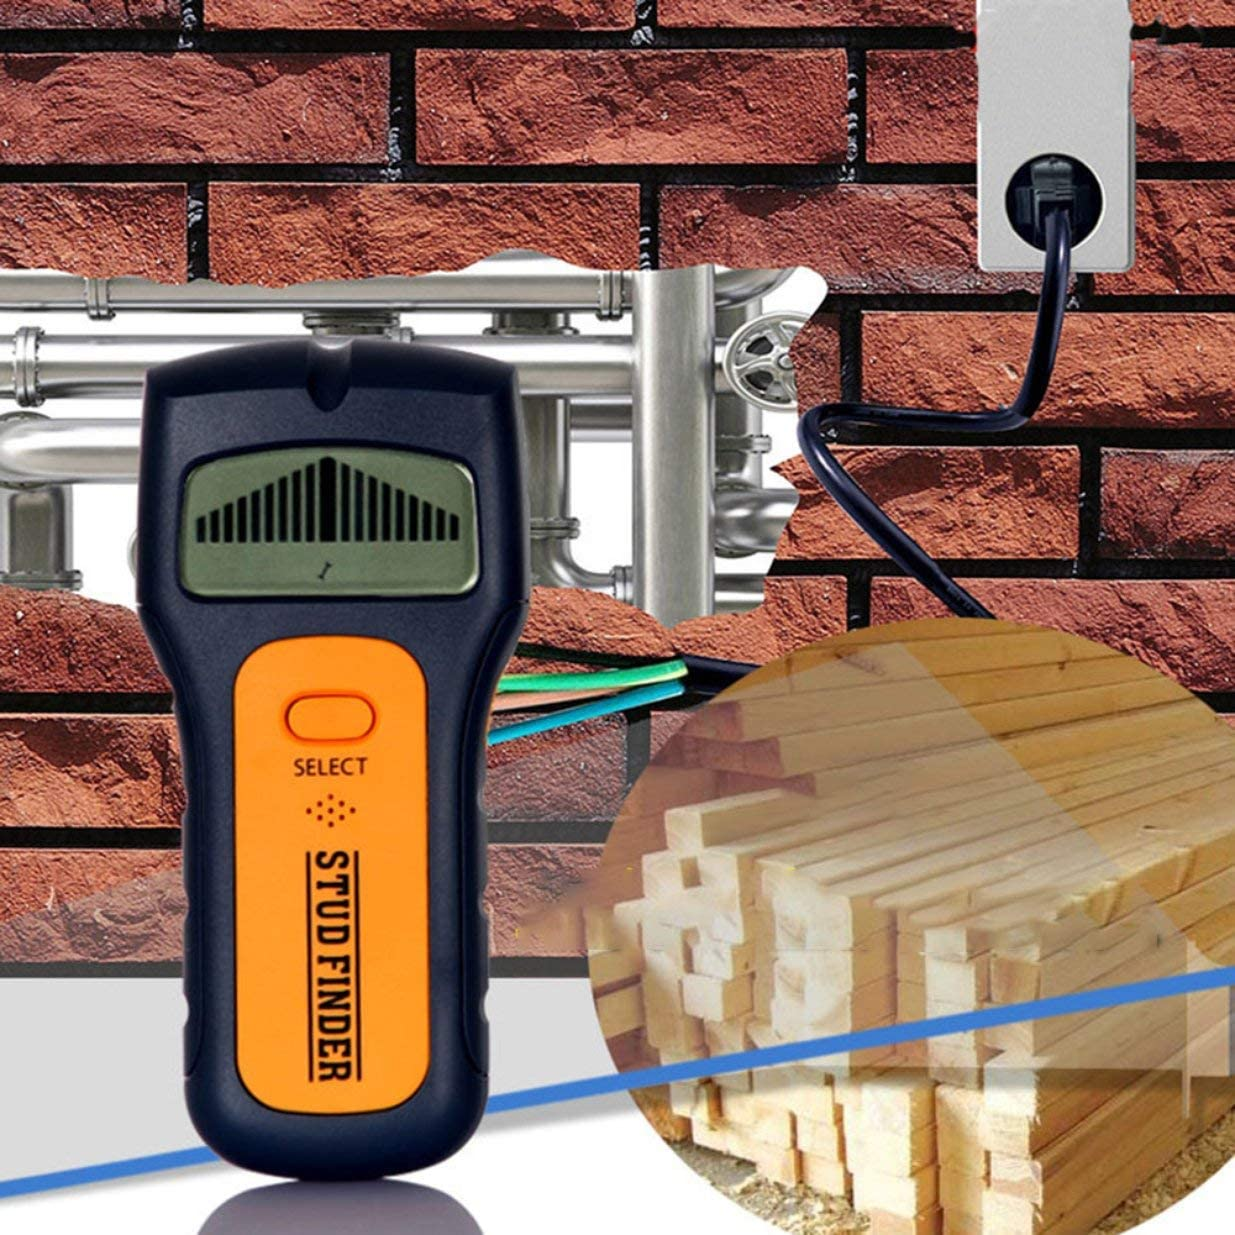 Sairis Portable Size 3 en 1 Multifuncional Stud Center Finder AC Live Wire Detector Esc/áner de Madera de Pared Multi Herramientas de Metal